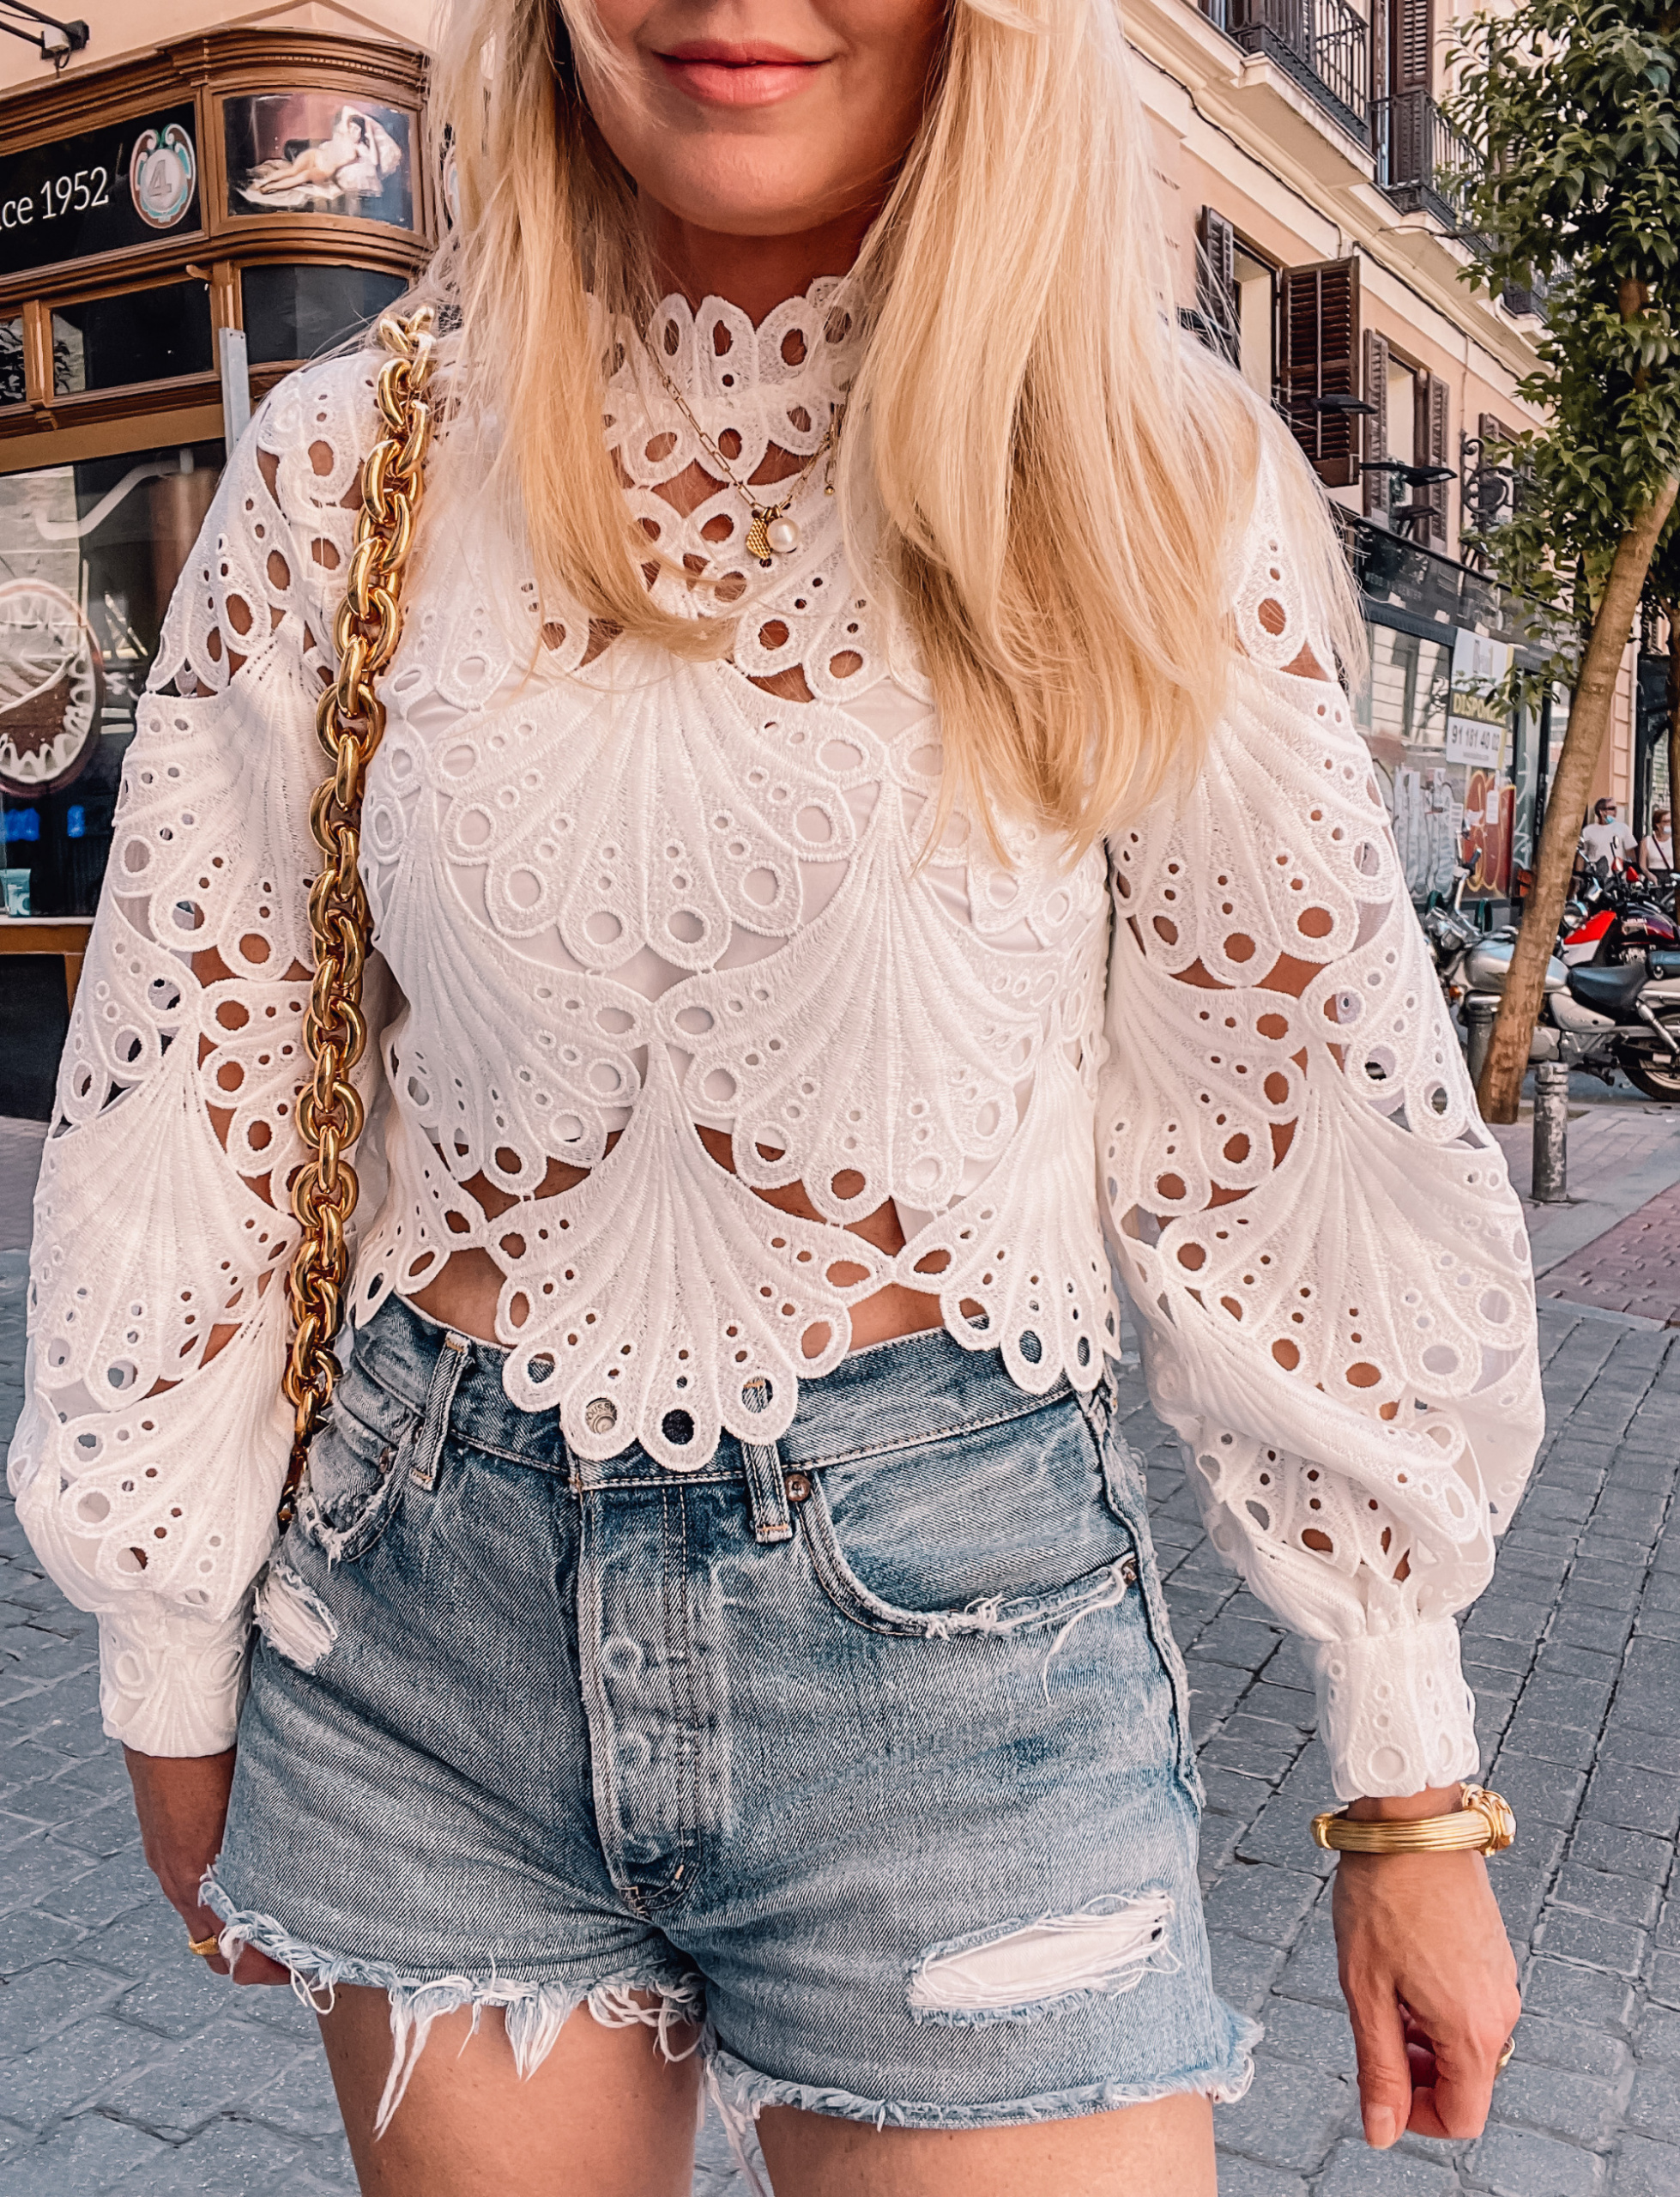 what to wear in spain, how to dress in spain, madrid, how to dress in madrid, what to wear in madrid, how to pack for a trip to spain, trip to spain, packing for spain, erin busbee, white maje lace top, mmoussy vintage jeans, bottega veneta chain cassette bag